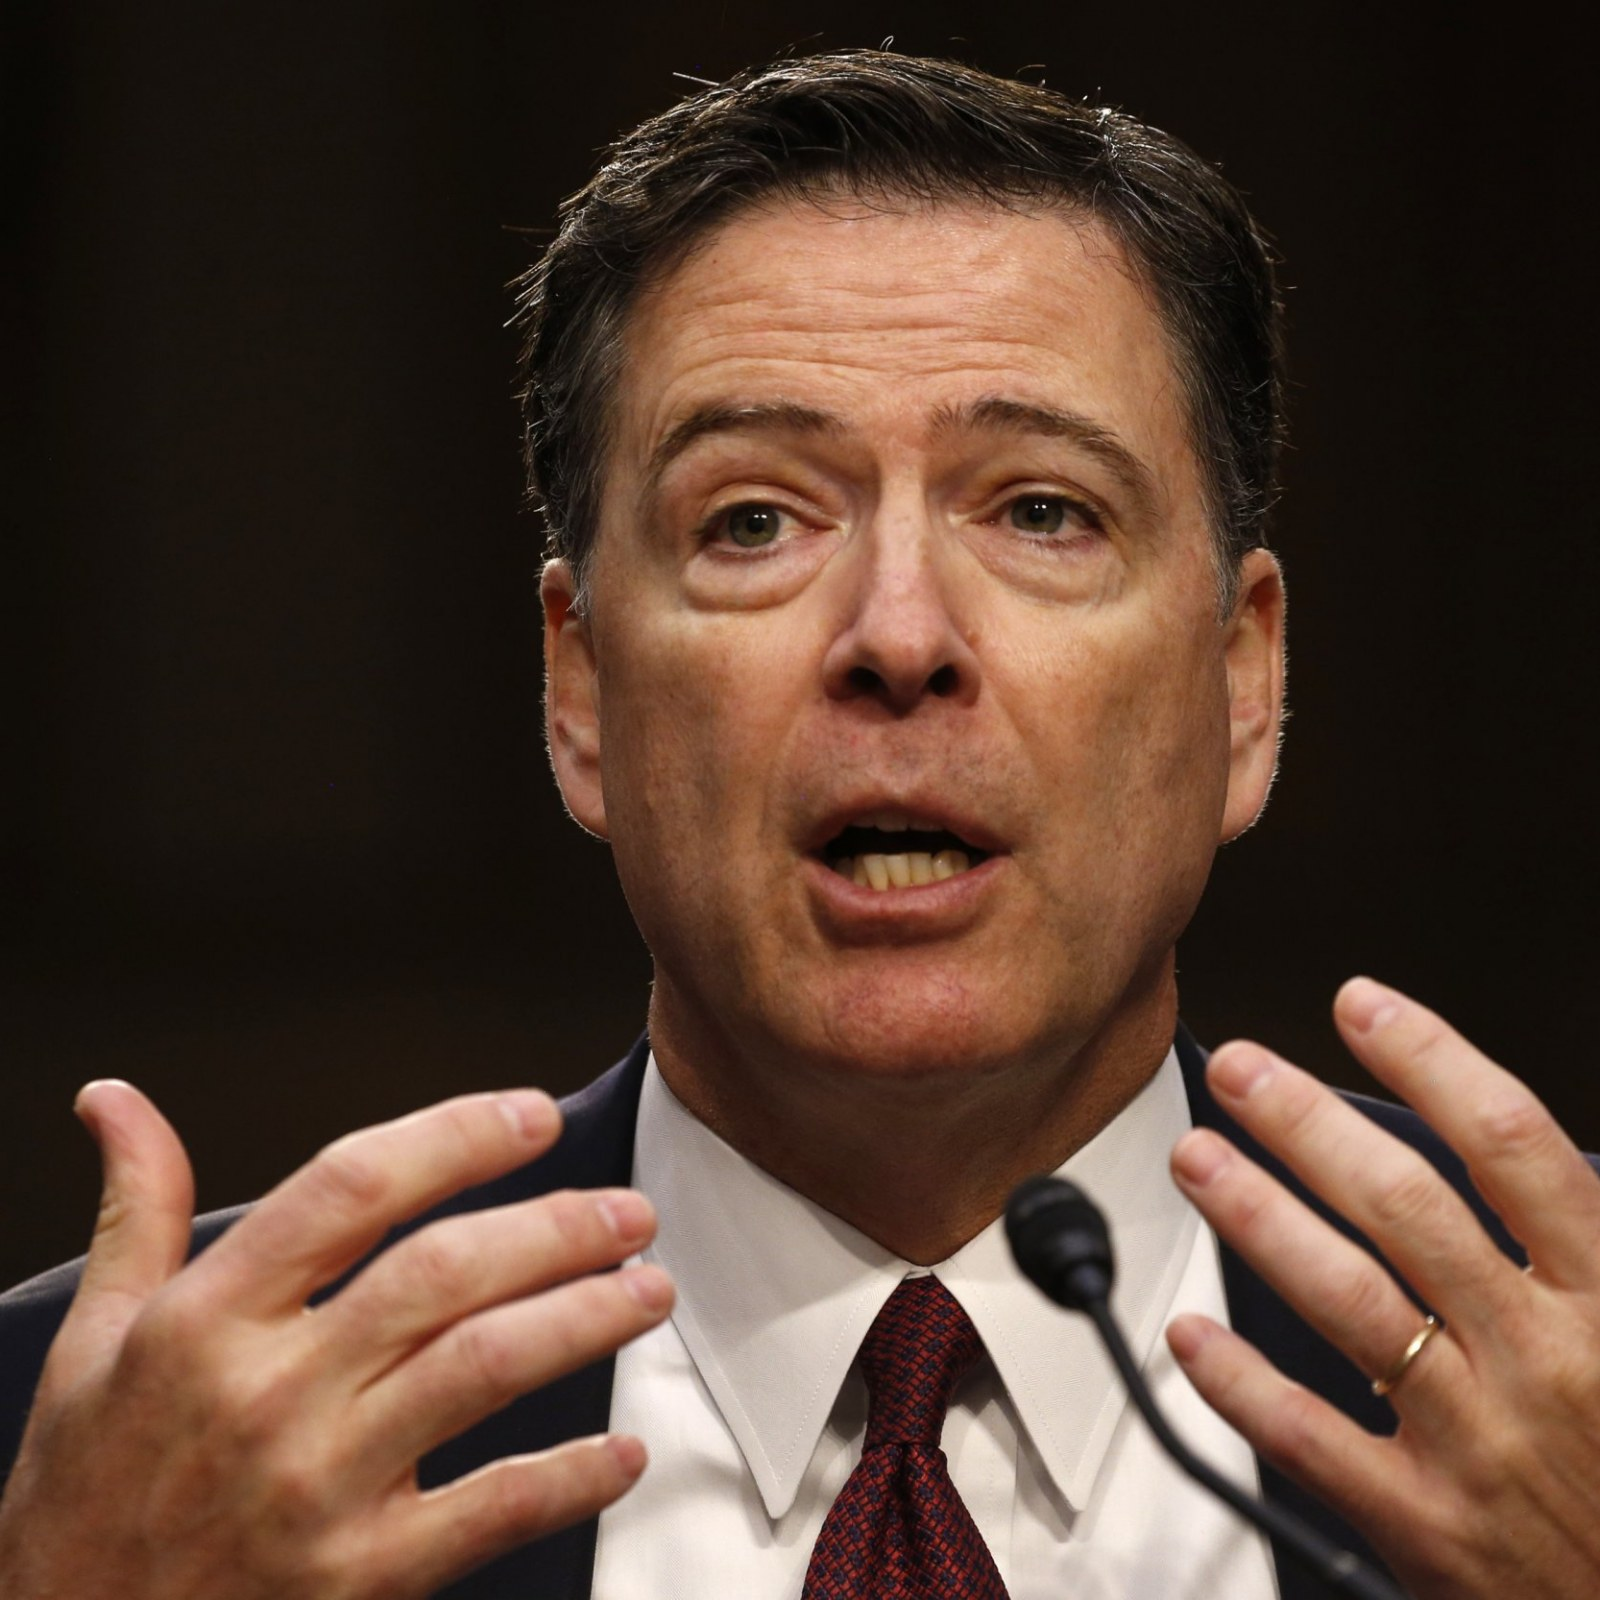 James Comey Can (Probably) Dunk